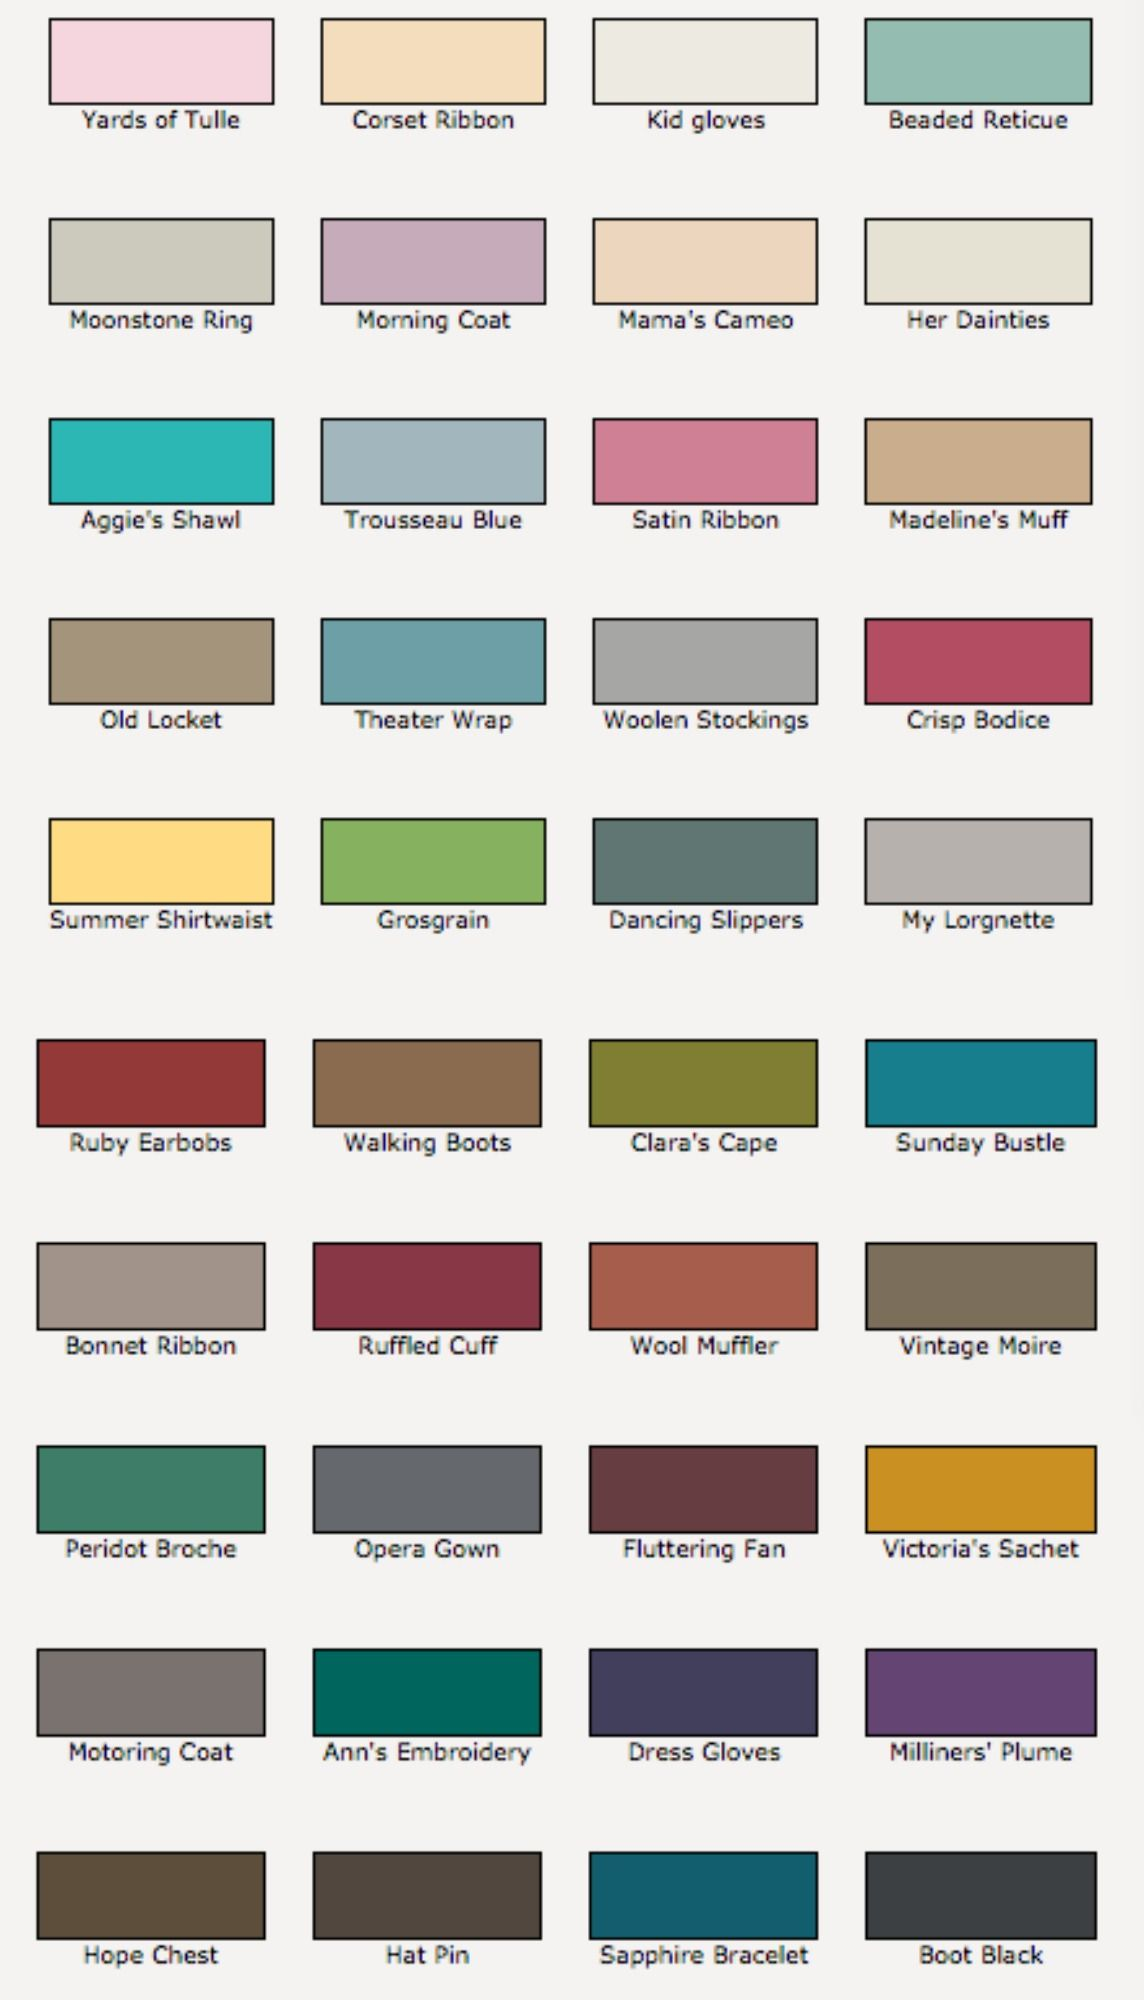 Paint 2 valspar painted cabinets beautiful valspar cabinet paint - Valspar Chalky Finish Paint As Some Gorgeous Color Options I Tried Sunday Bustle On A